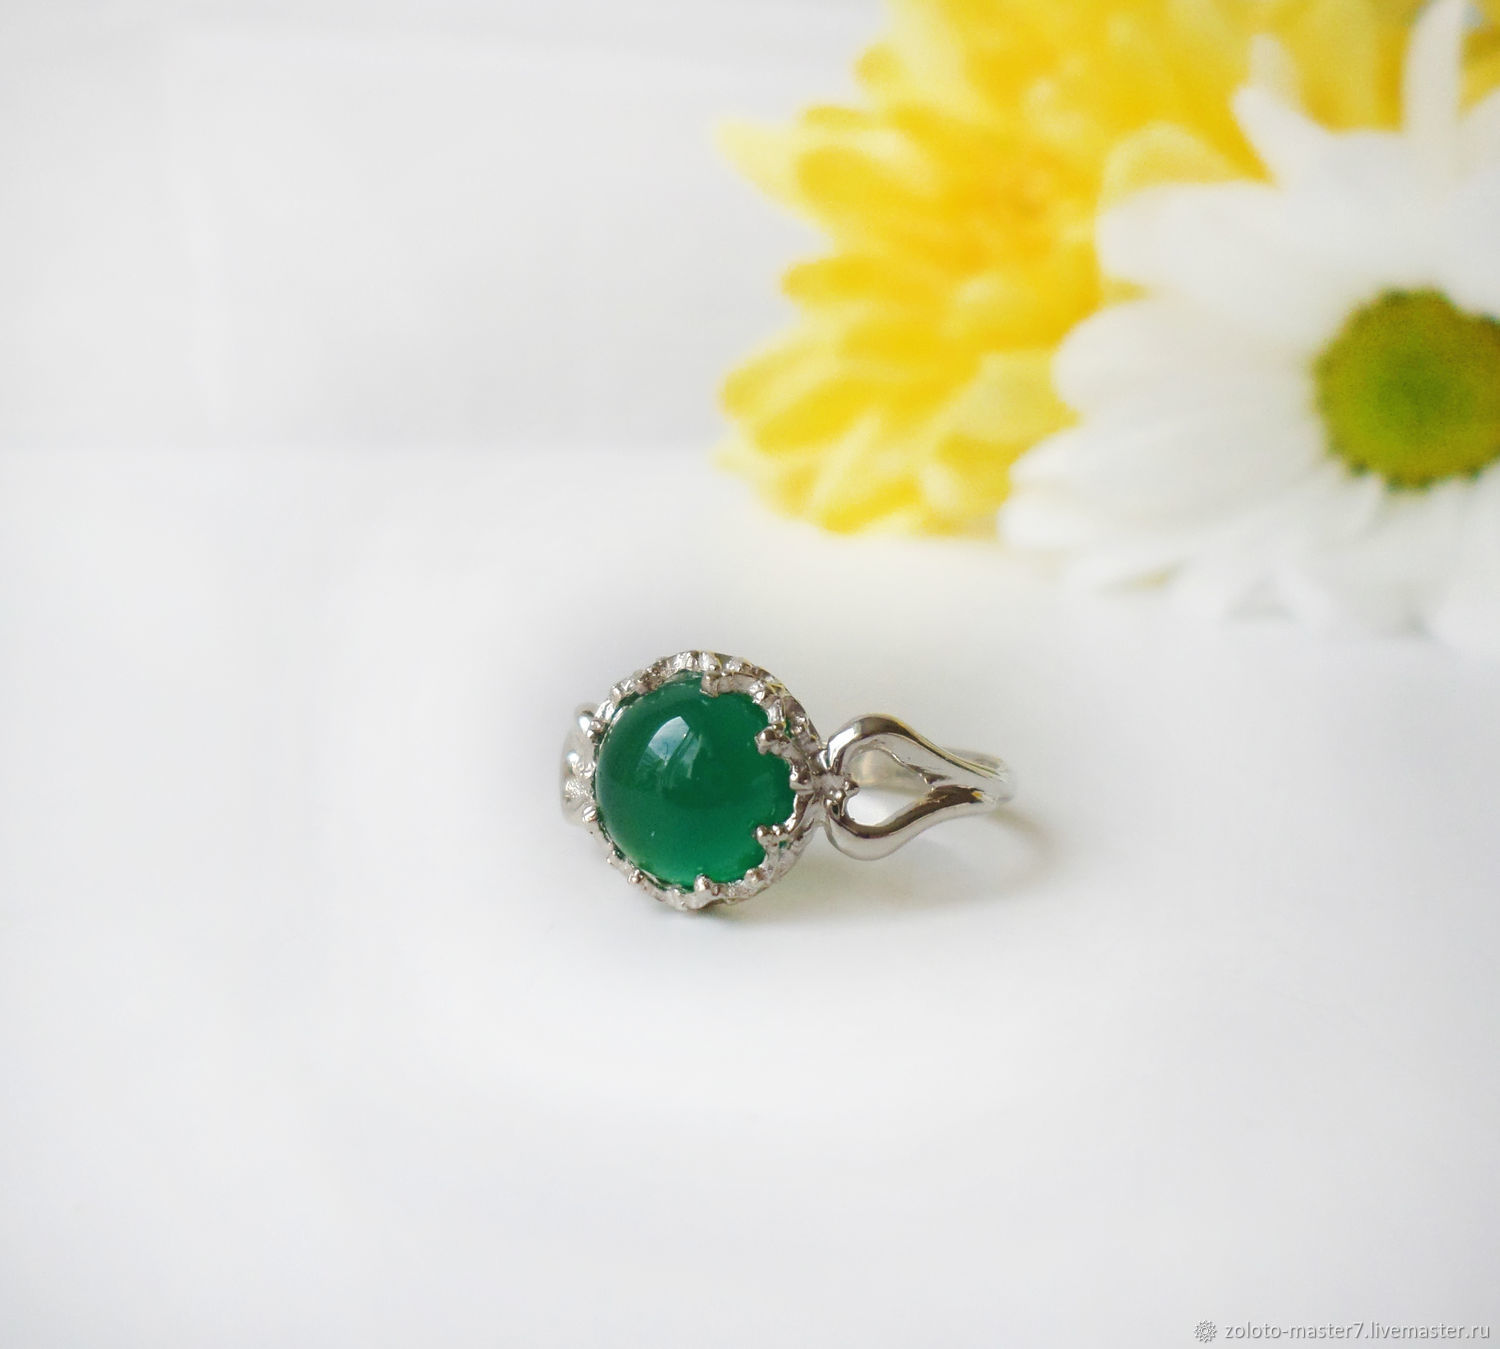 Silver ring with green chalcedony. 925 sterling silver, Rings, Chaikovsky,  Фото №1